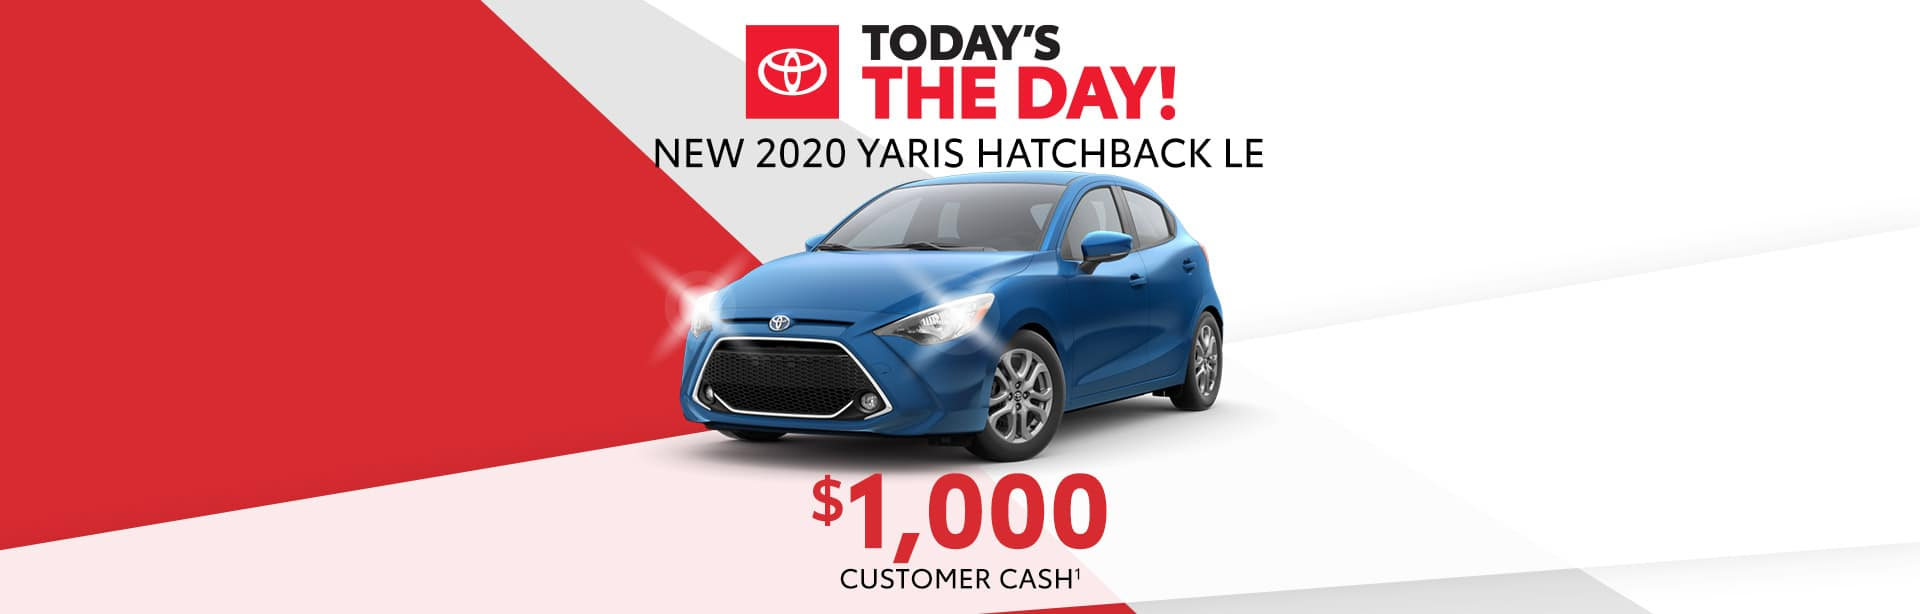 $1,000 cash back on a New Toyota Yaris near Indianapolis, Indiana